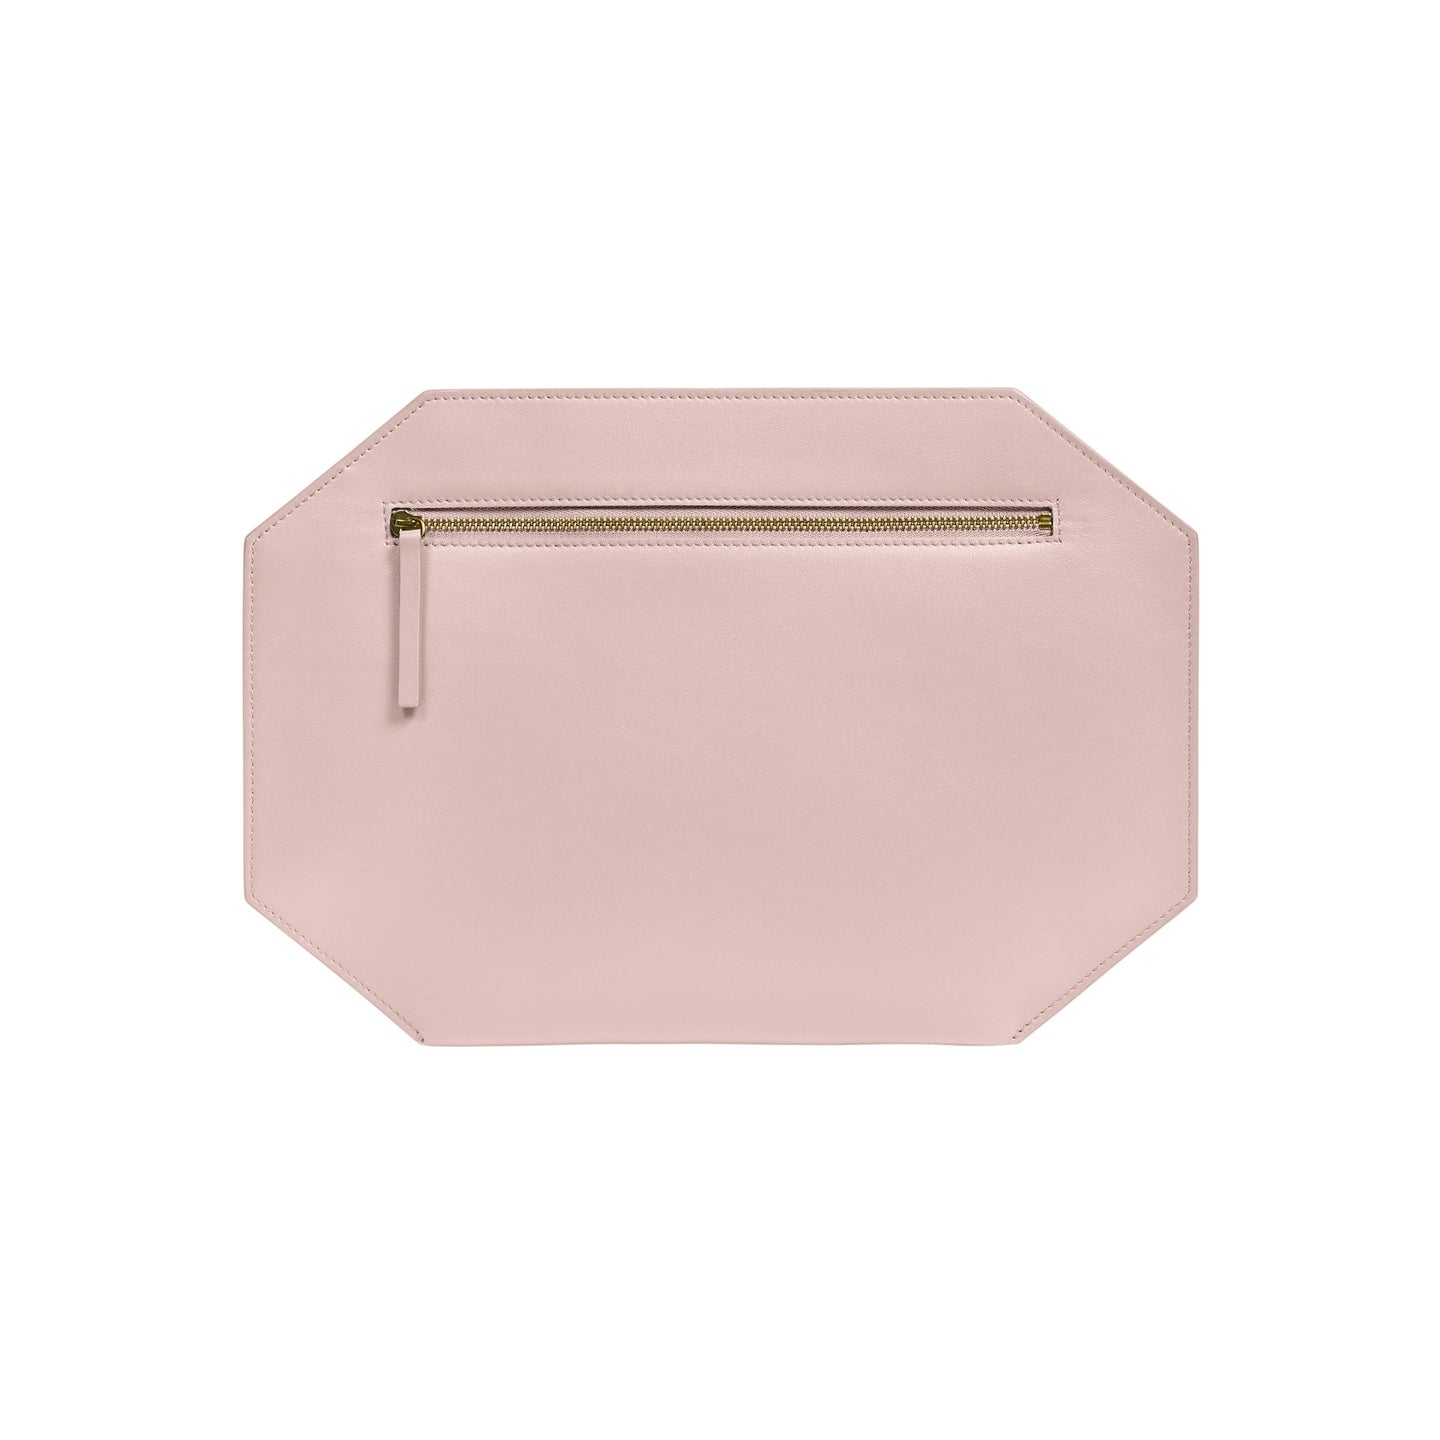 "Large polygon shape clutch purse, made of exceptional quality smooth matte leather  100% leather Zipper closure Canvas lining Measures: 8.5""h x 12.5"